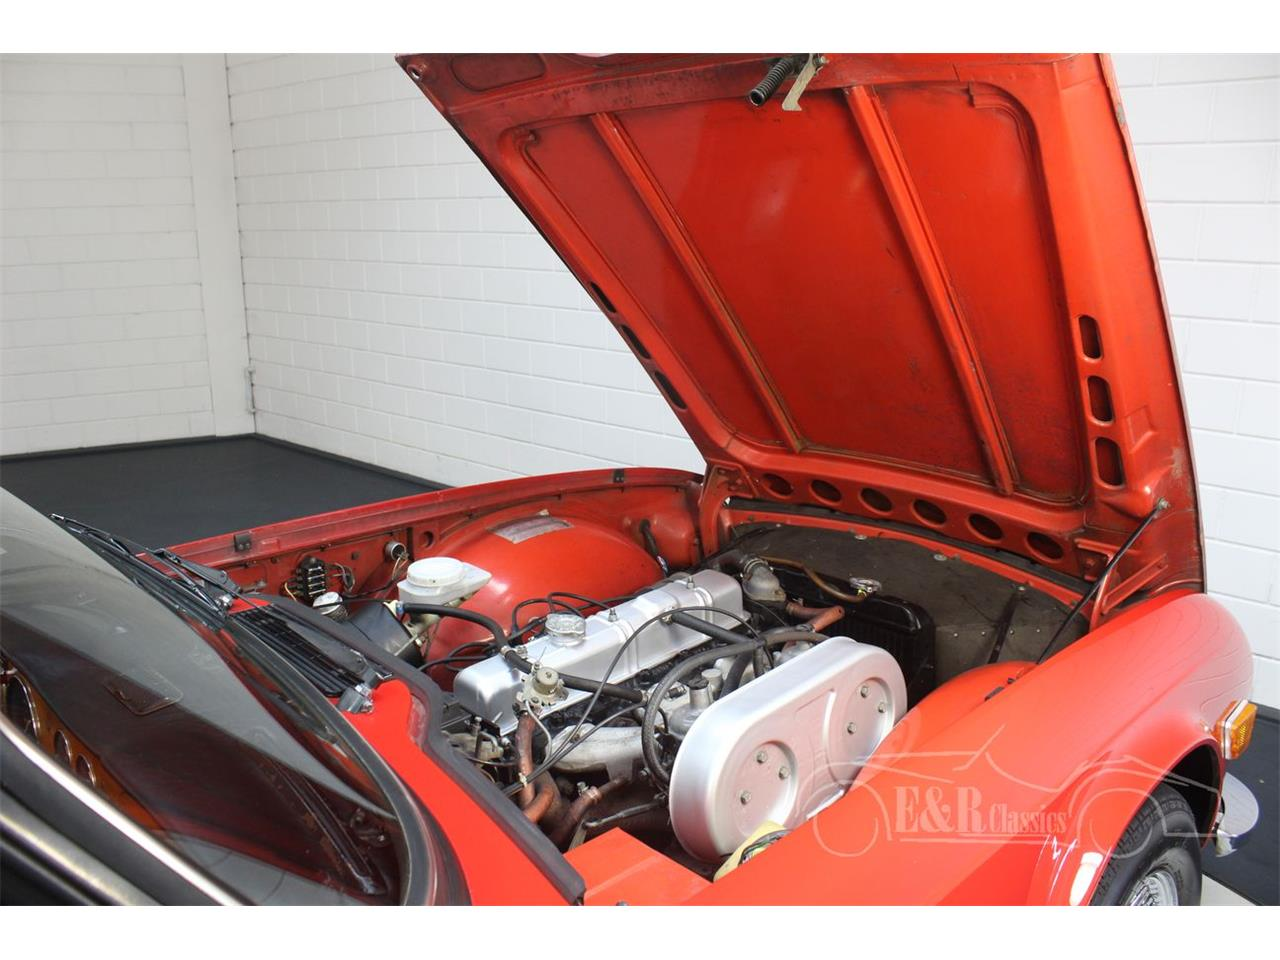 Large Picture of '73 Triumph TR6 - $25,800.00 Offered by E & R Classics - PWMQ